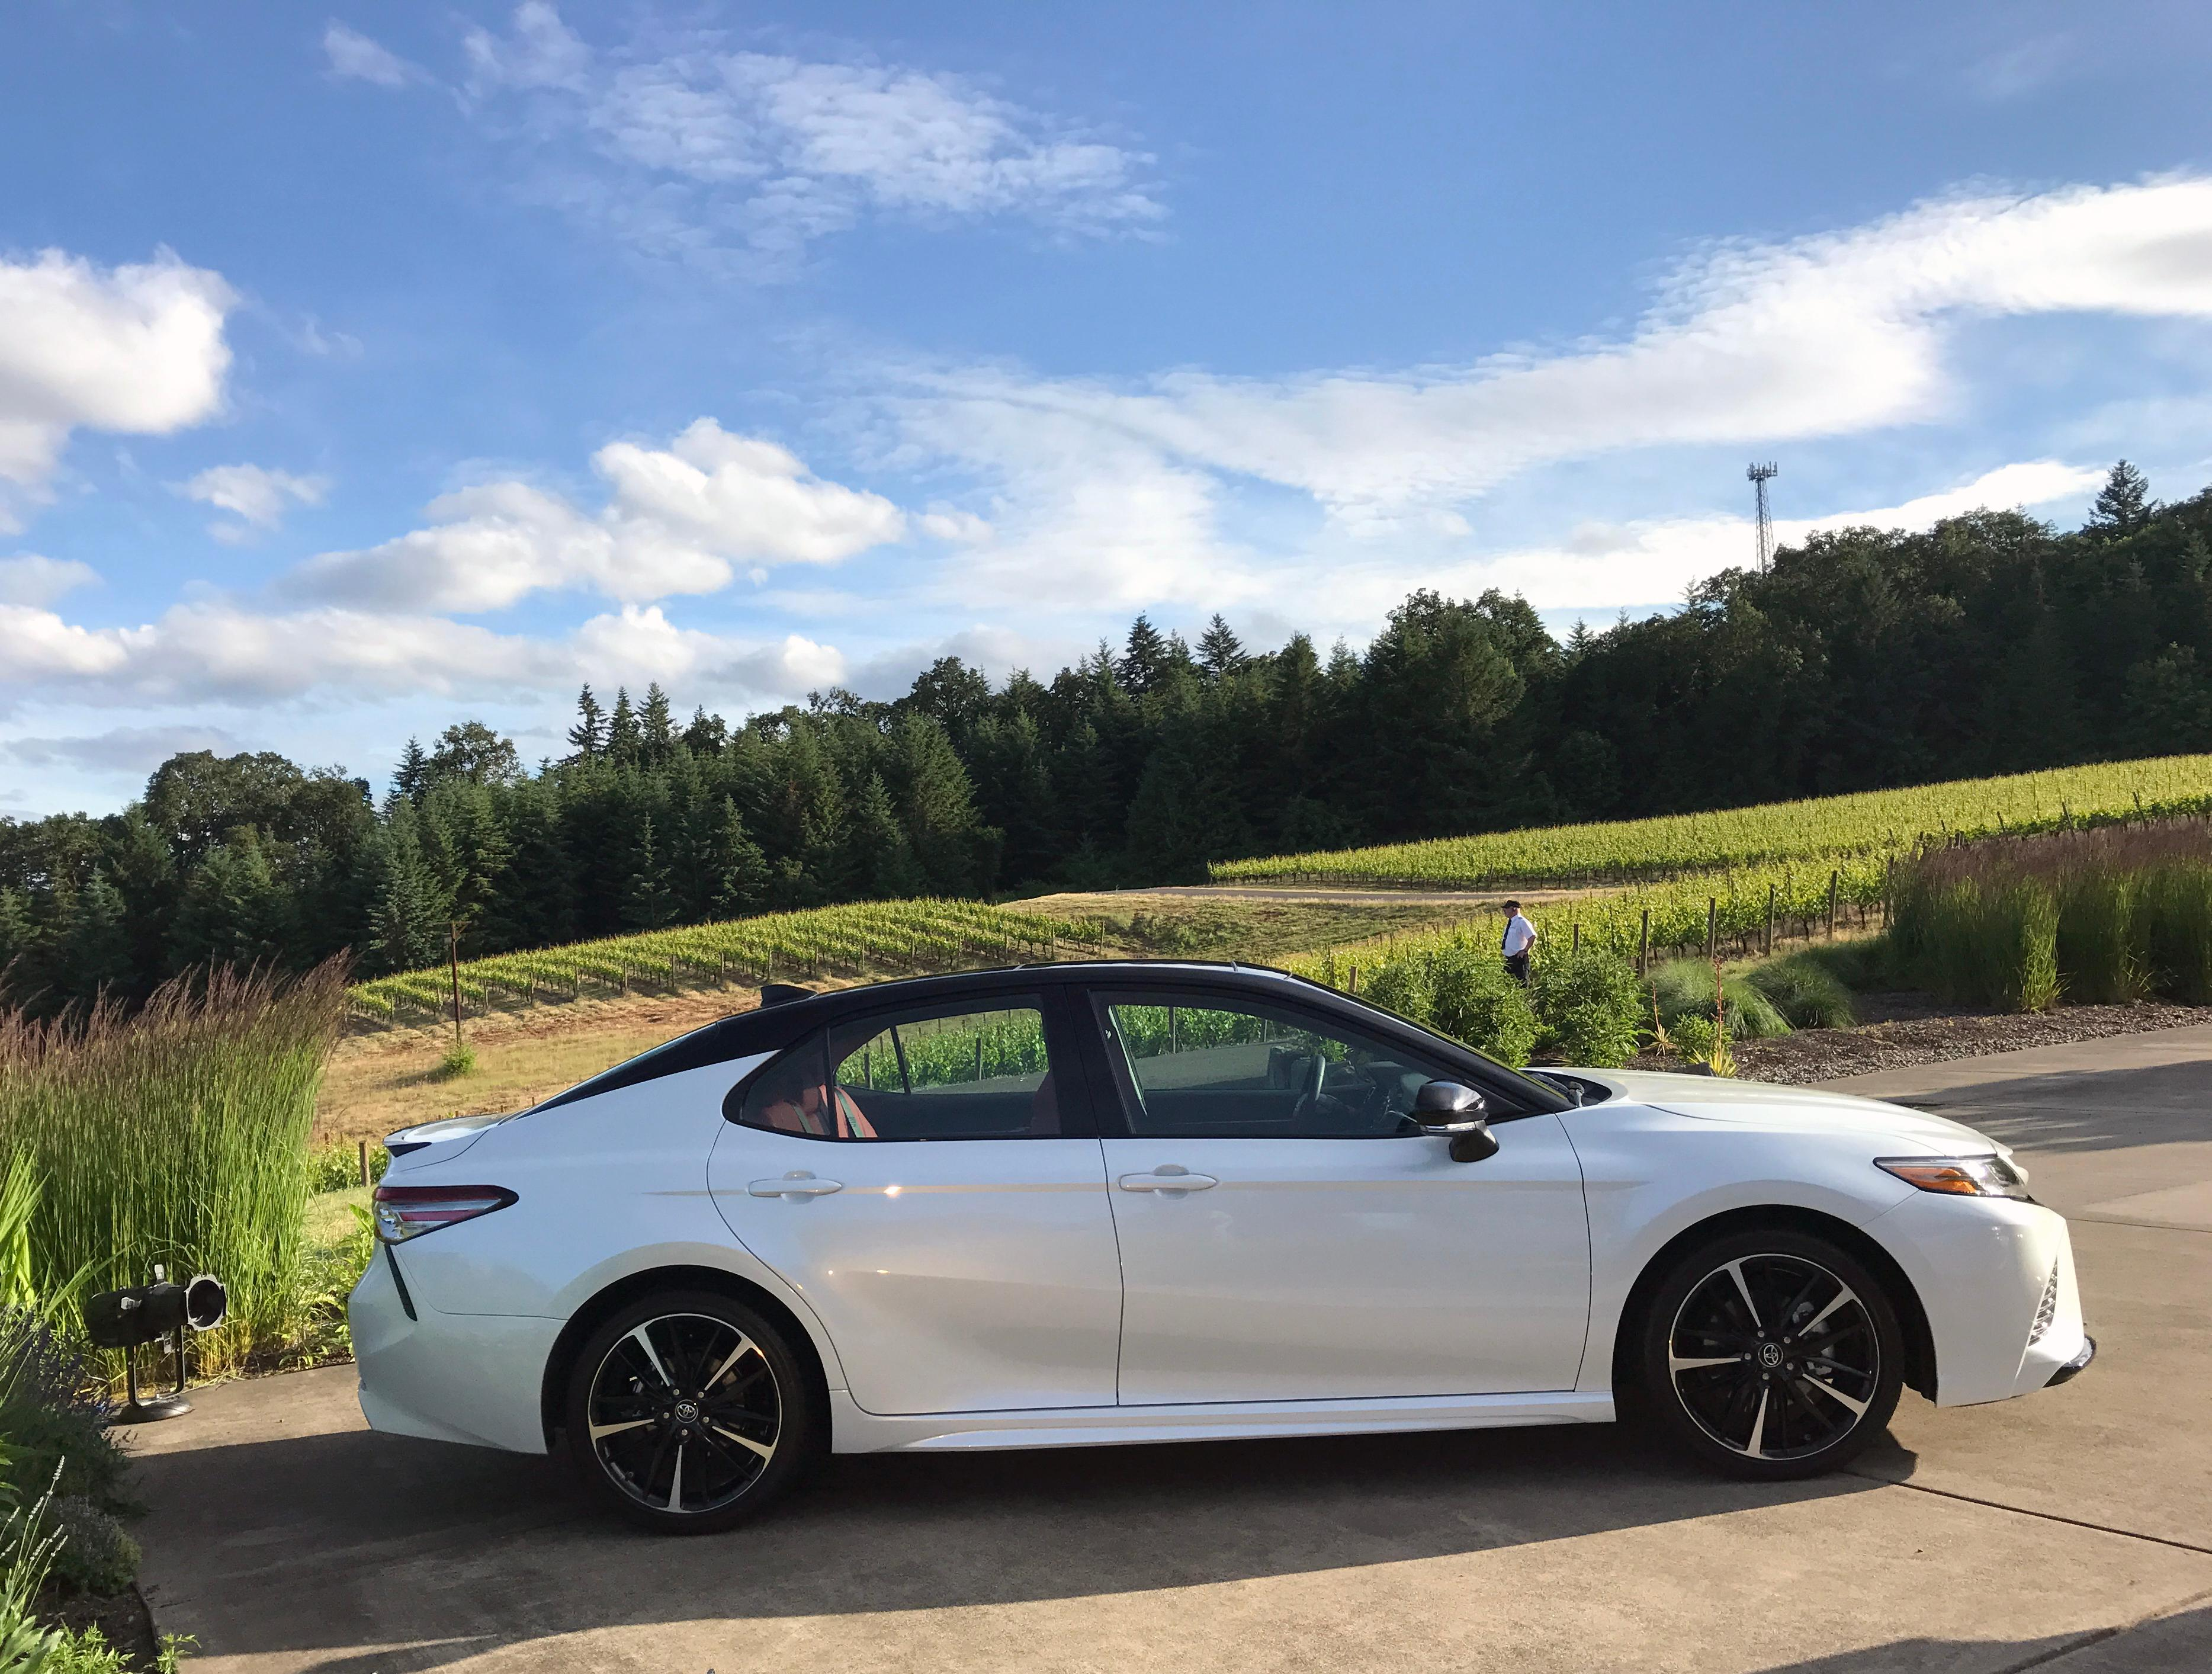 2018 toyota camry xse.  camry 2018 toyota camry xse sinclair broadcast group  jill ciminillo on toyota camry xse